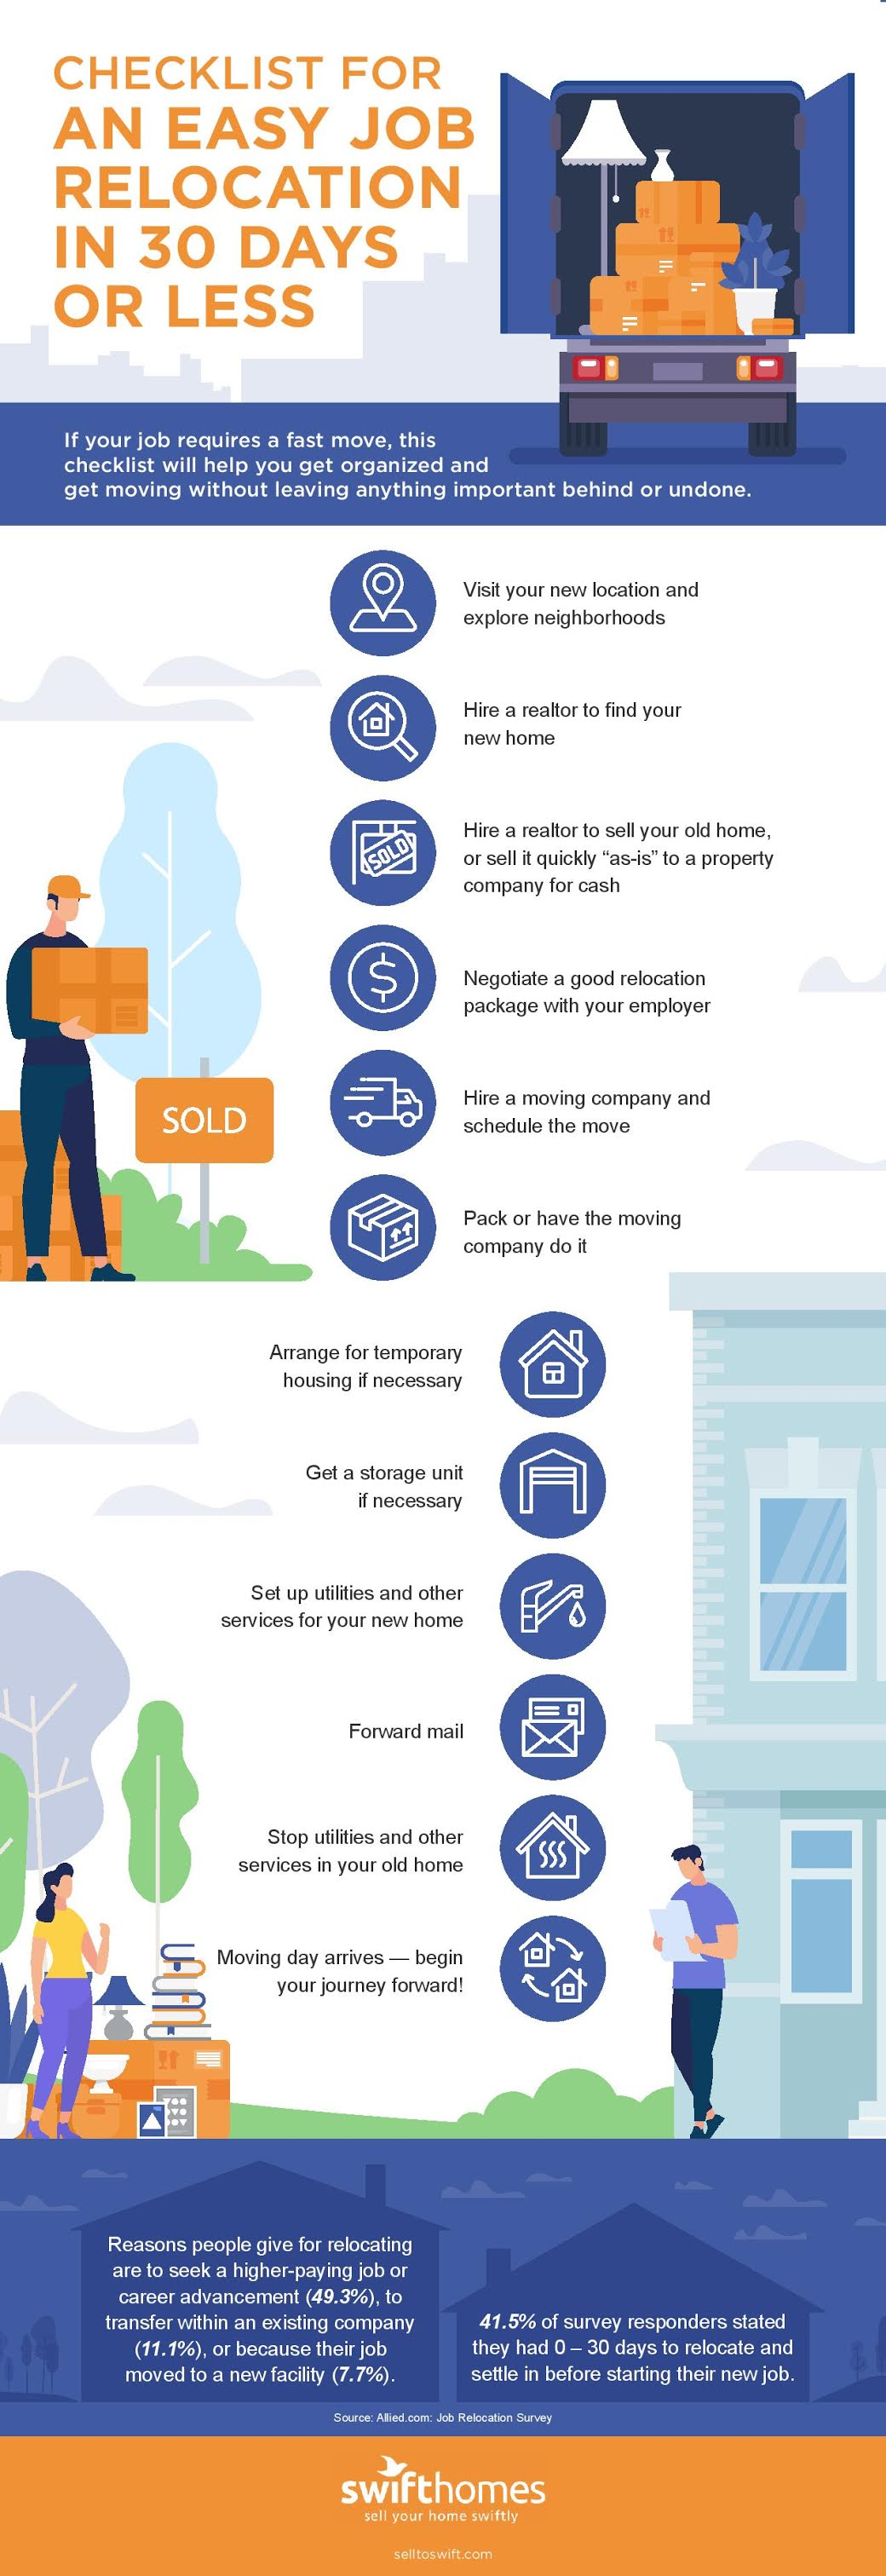 Checklist for an Easy Job Relocation #infographic #Job Relocation #Career & Jobs #infographics #Opportunity #Infographic